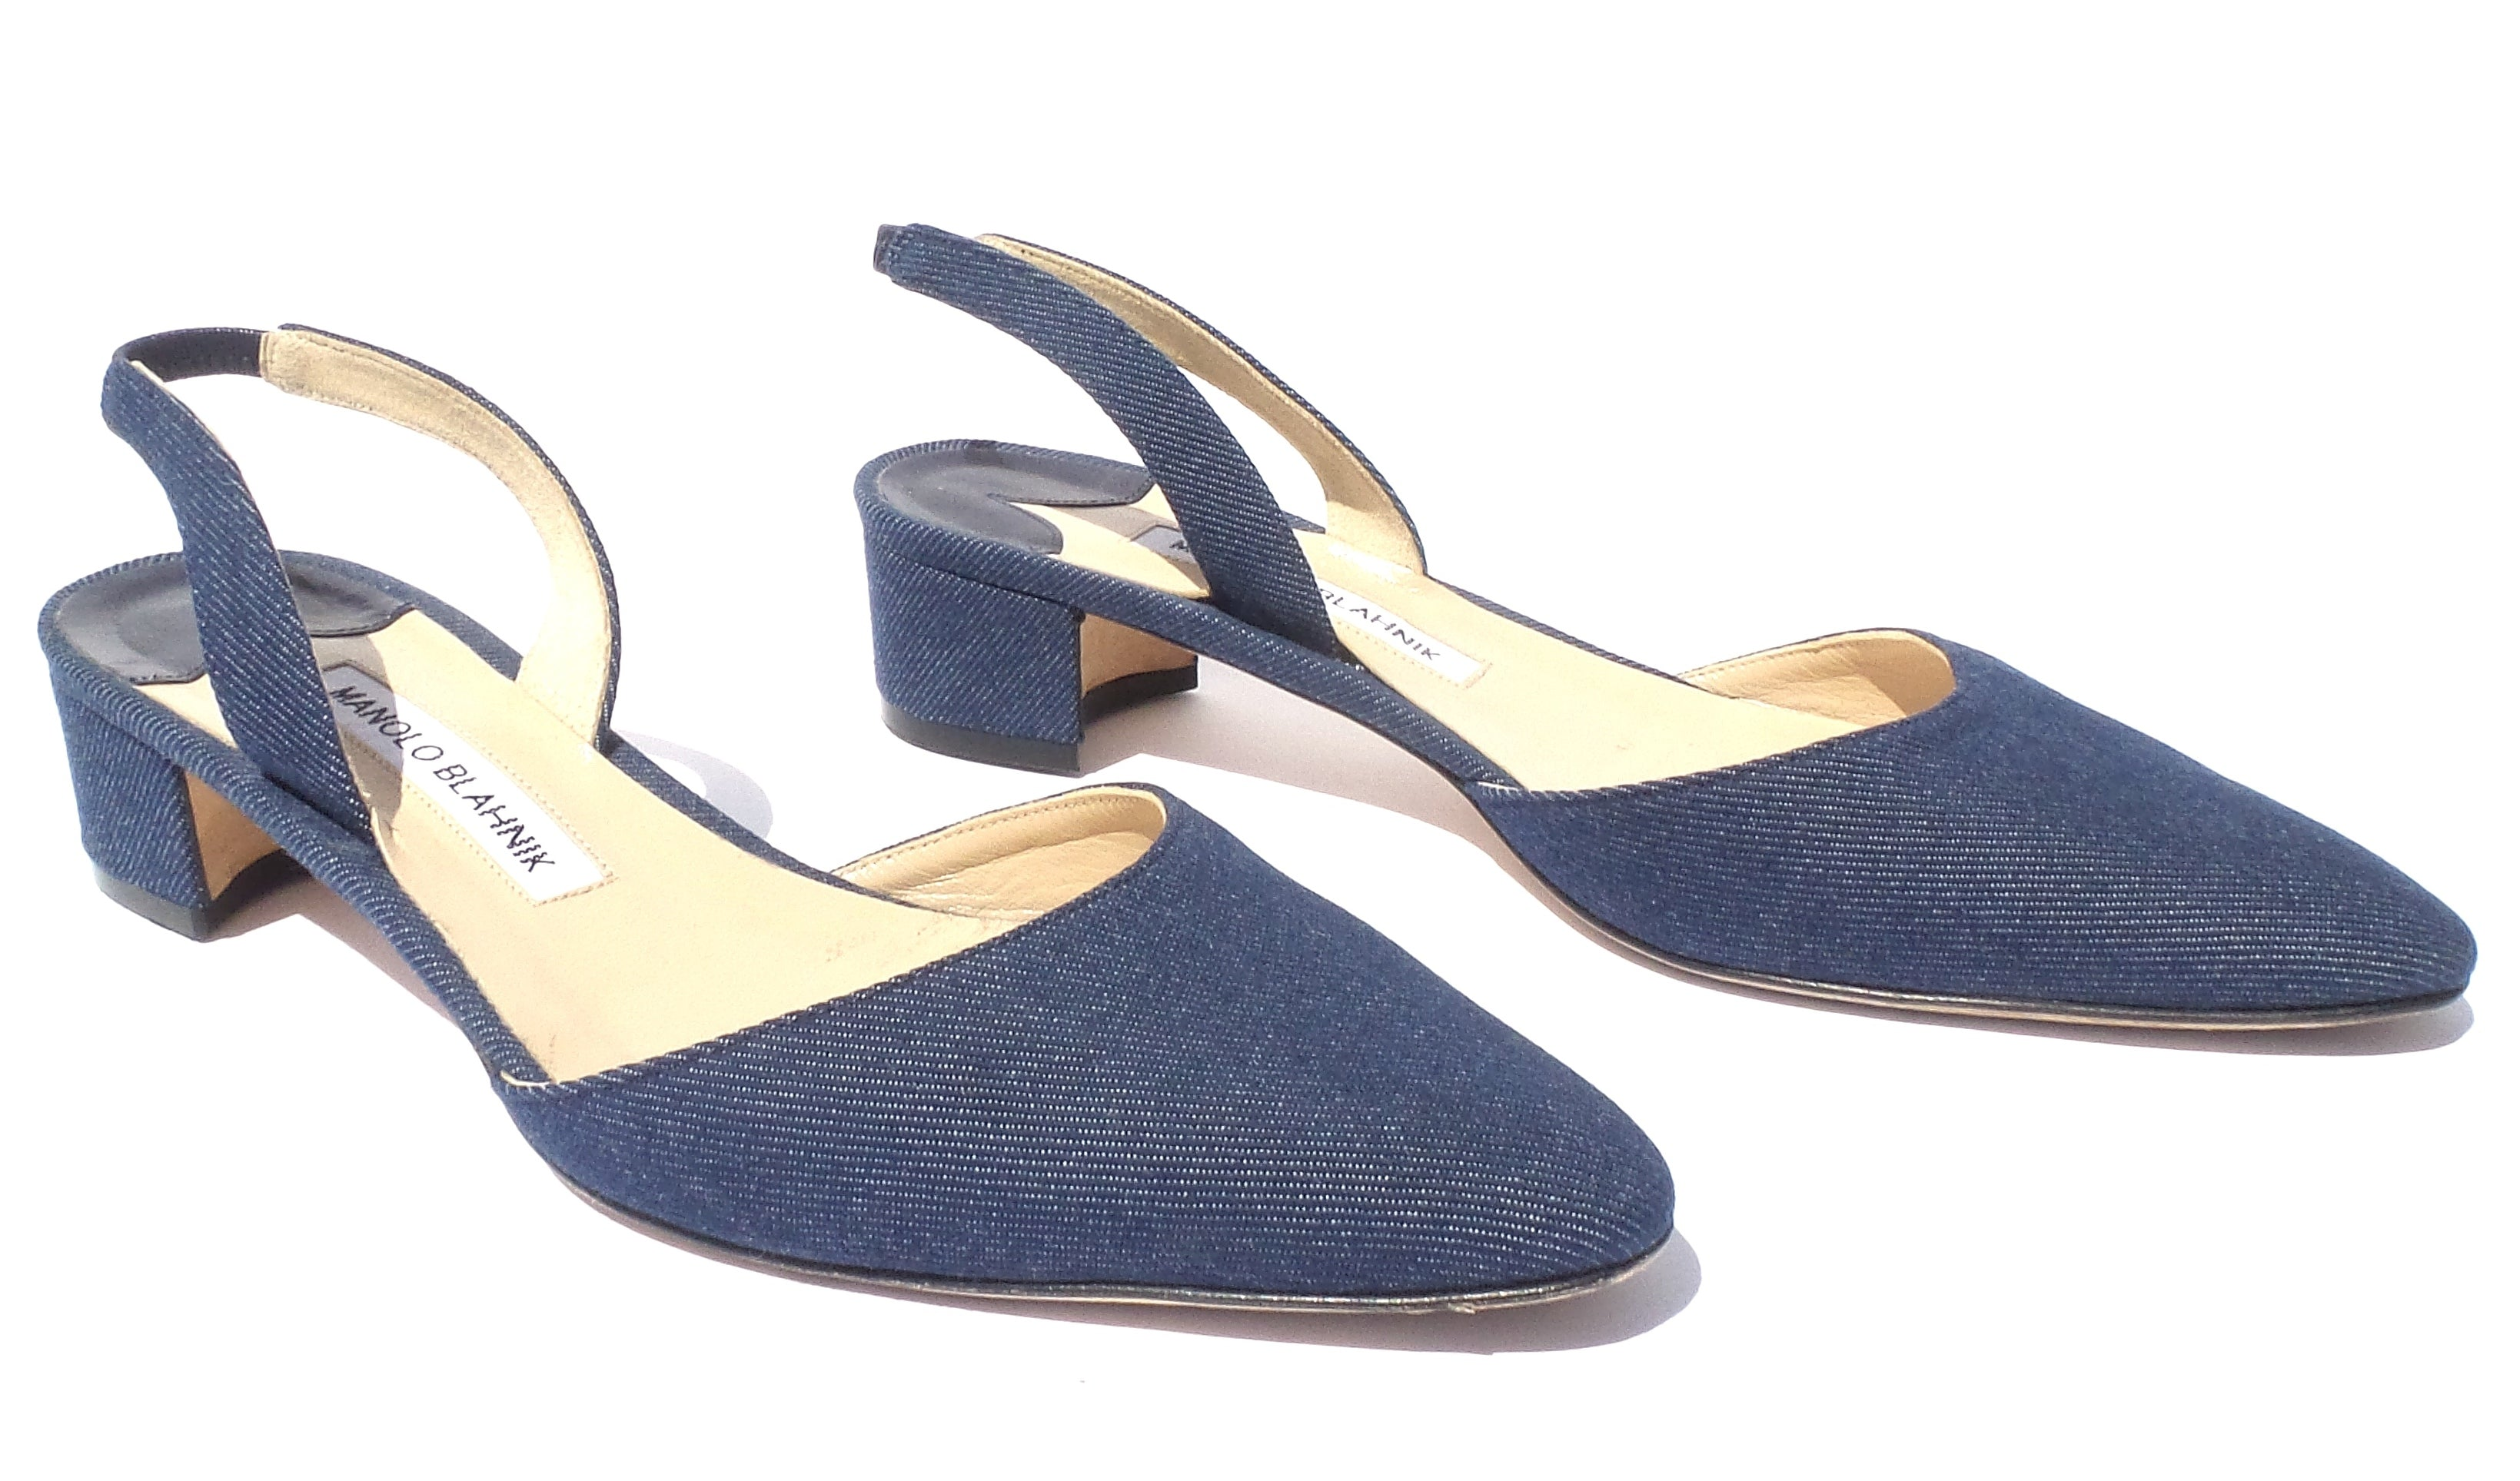 MANOLO BLAHNIK Aspro Blue Denim Almond Toe Low Block Heel Slingbacks Pumps 39 GC